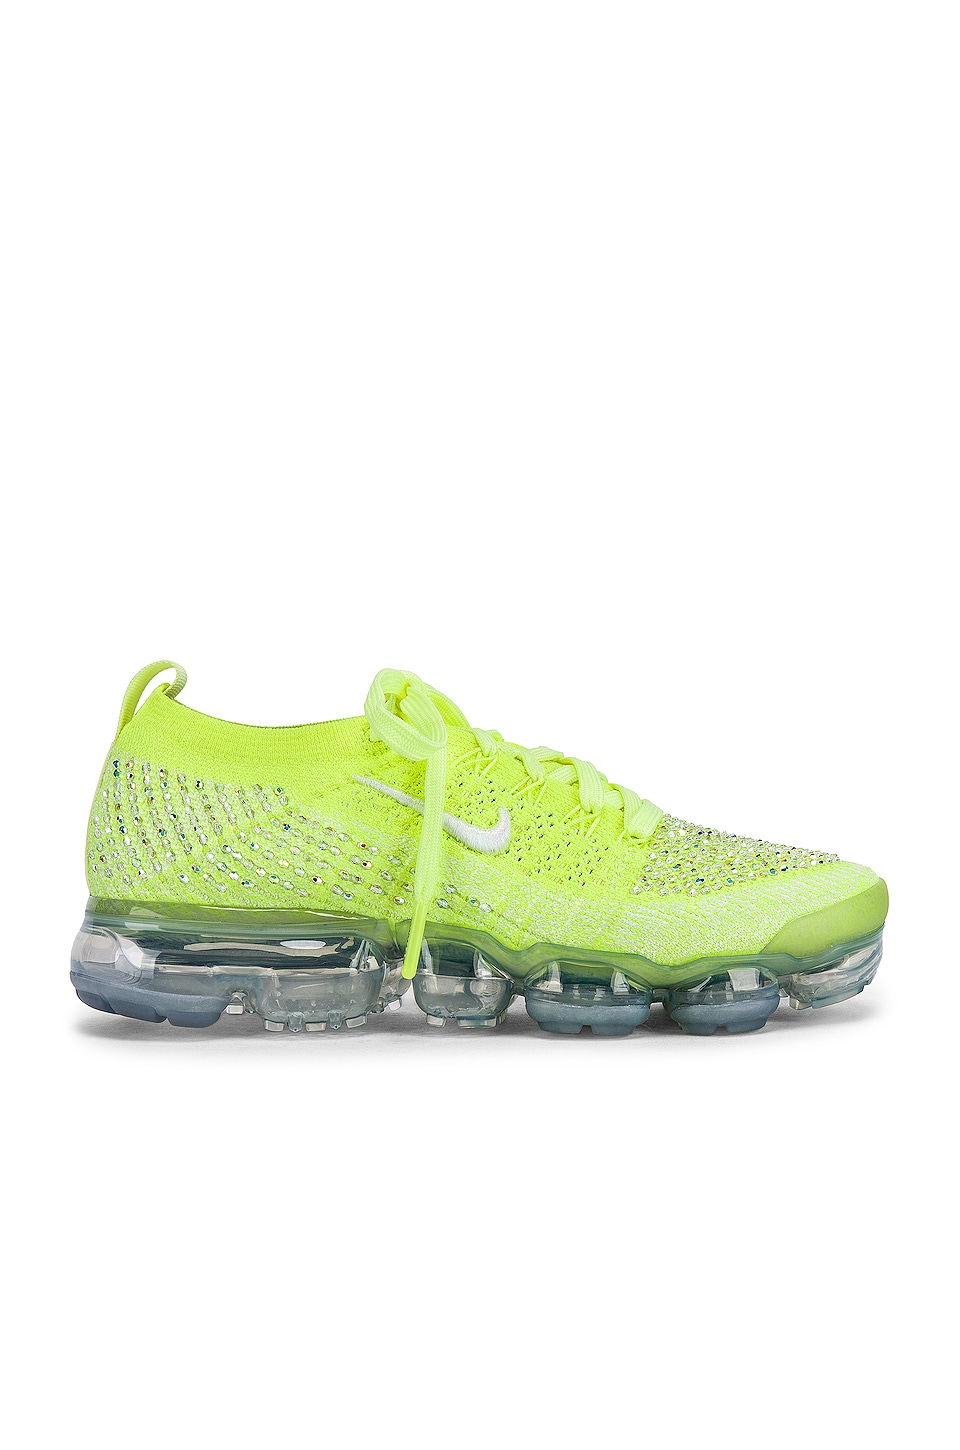 buy popular 0ad99 4327d Nike Air Vapormax Flyknit 2 LXX Sneaker in Volt Glow, White ...